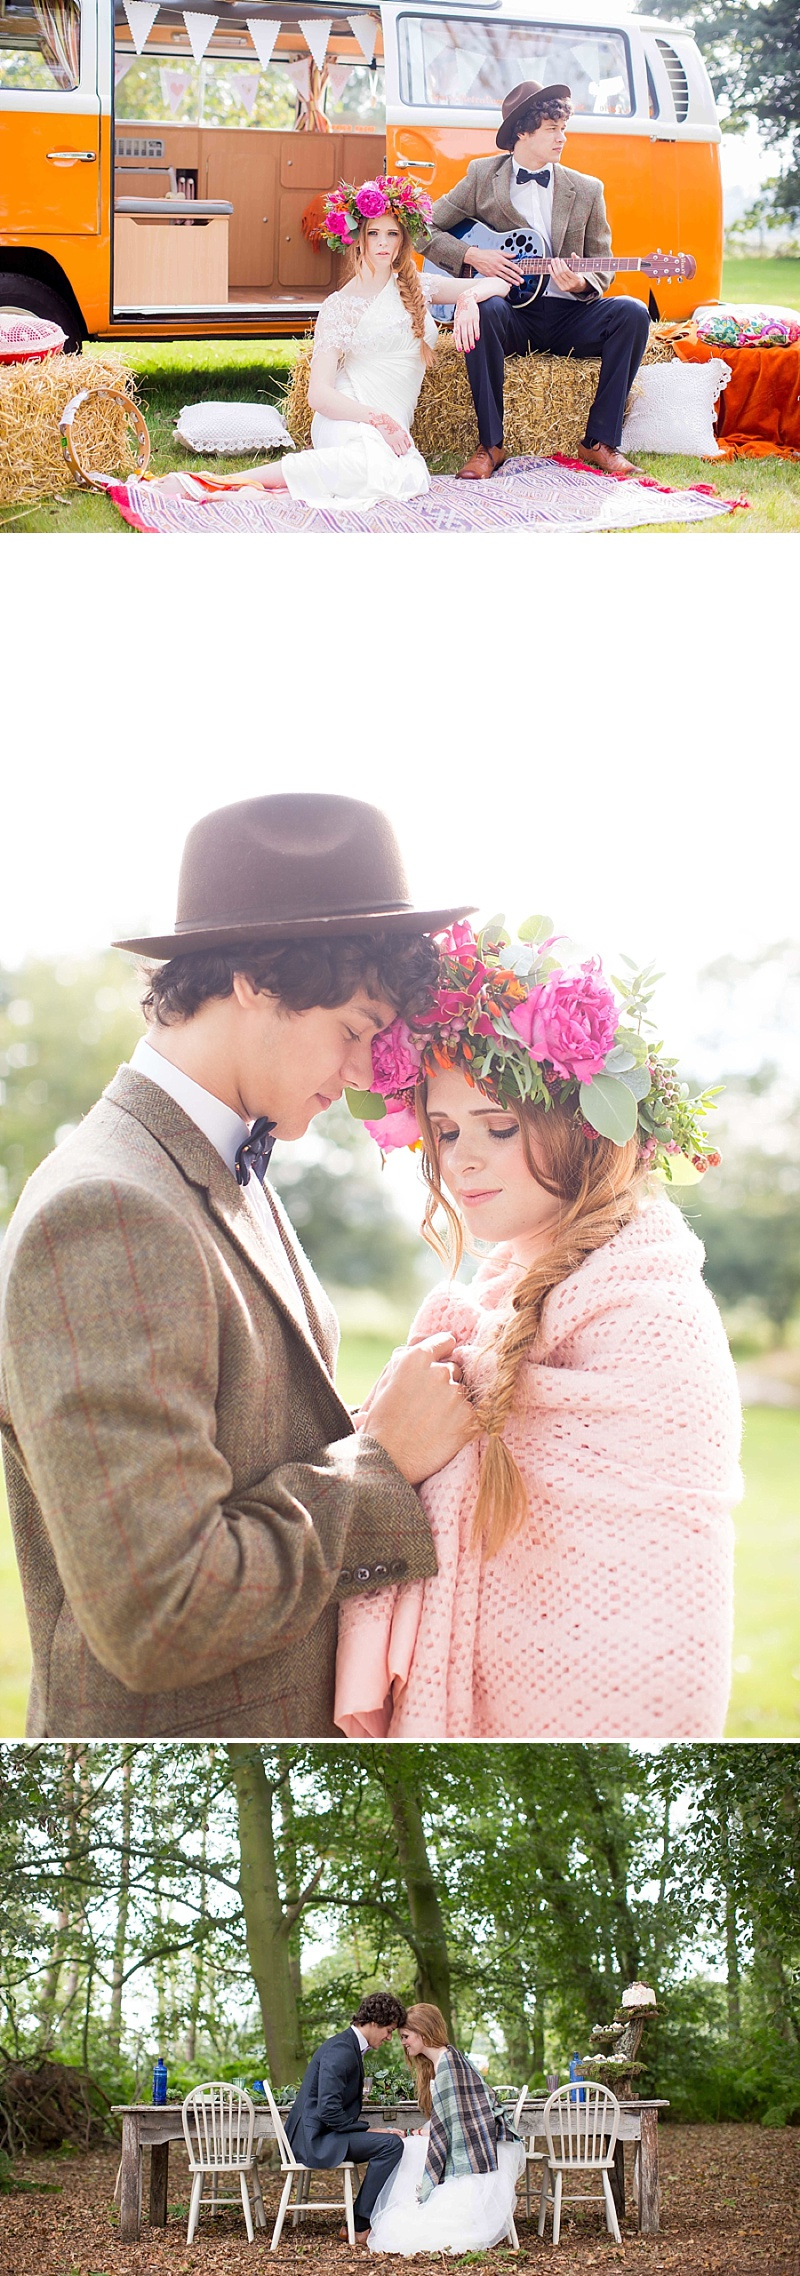 A bohemian wedding inspiration feature with a fresh flower crown backless dress and cute retro camper van_0063